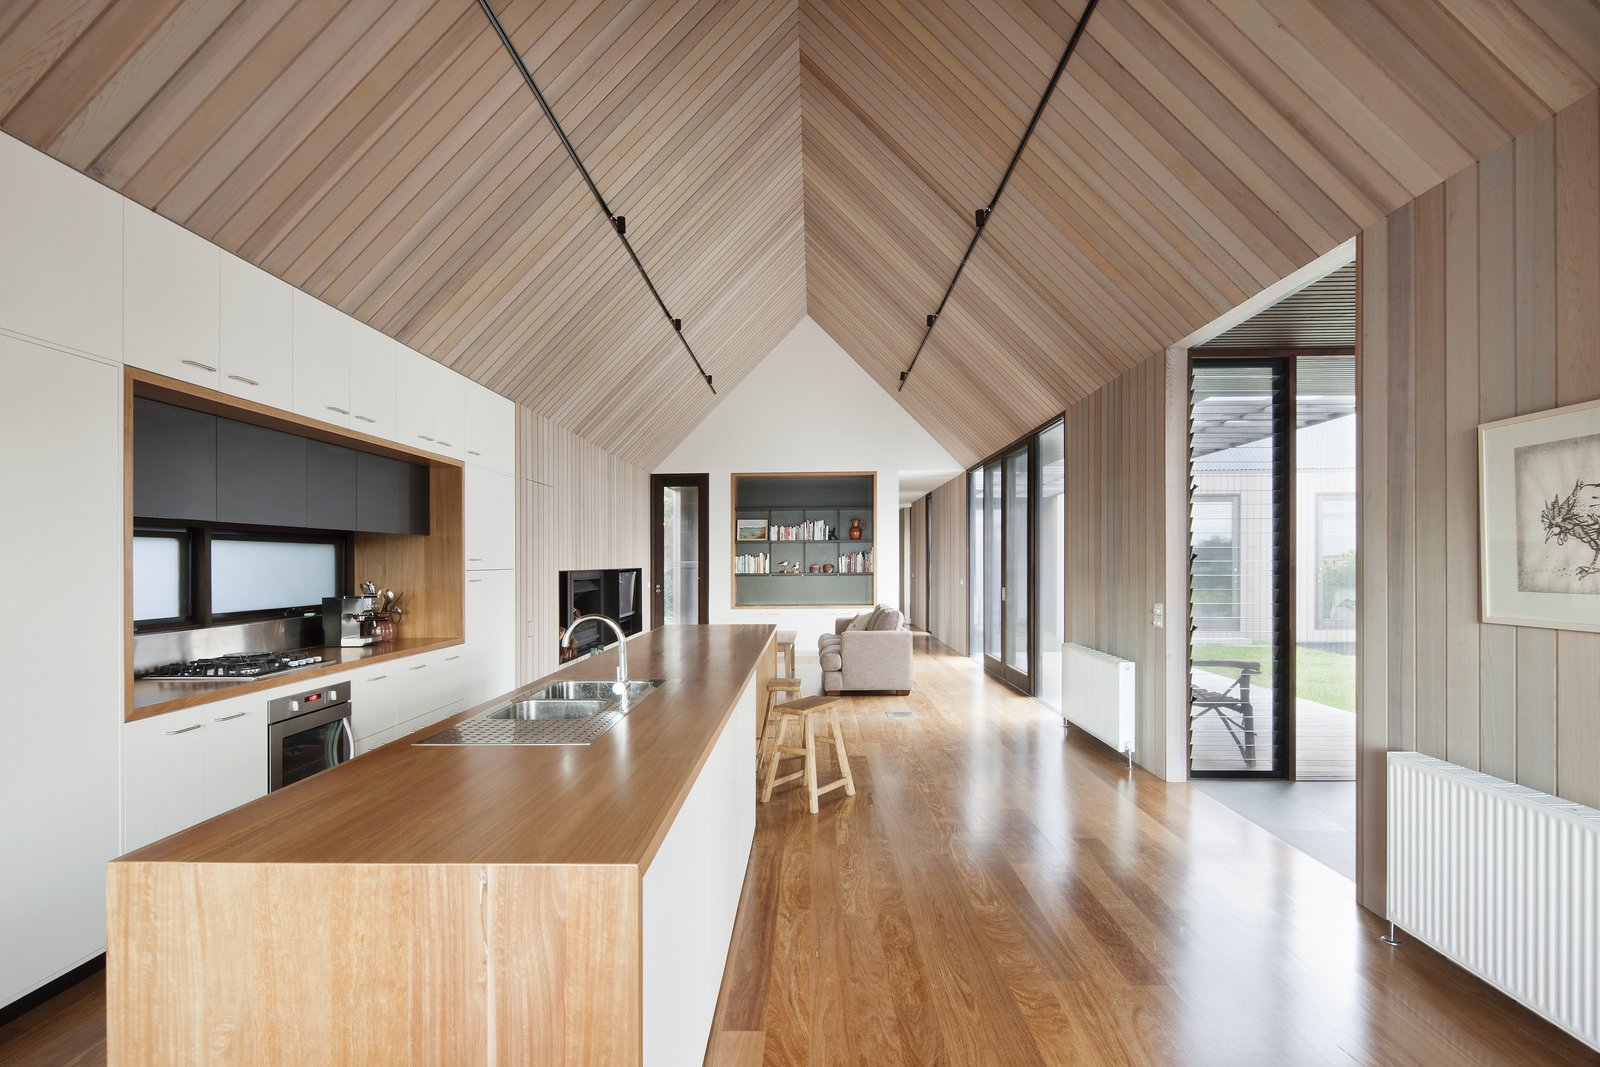 Living Room, Medium Hardwood Floor, Track Lighting, Standard Layout Fireplace, Sofa, and Stools Inside the southern pavilion of this Australian home, there is the primary open-plan living space, a study, a laundry room, and a guest bedroom and bath. A streamlined kitchen is defined by its white cabinetry against the surrounding cedar walls. Jackson Clements Burrows Architects led the project.  Photo 5 of 9 in Three Connected Pavilions Form This Airy Australian Beach Retreat